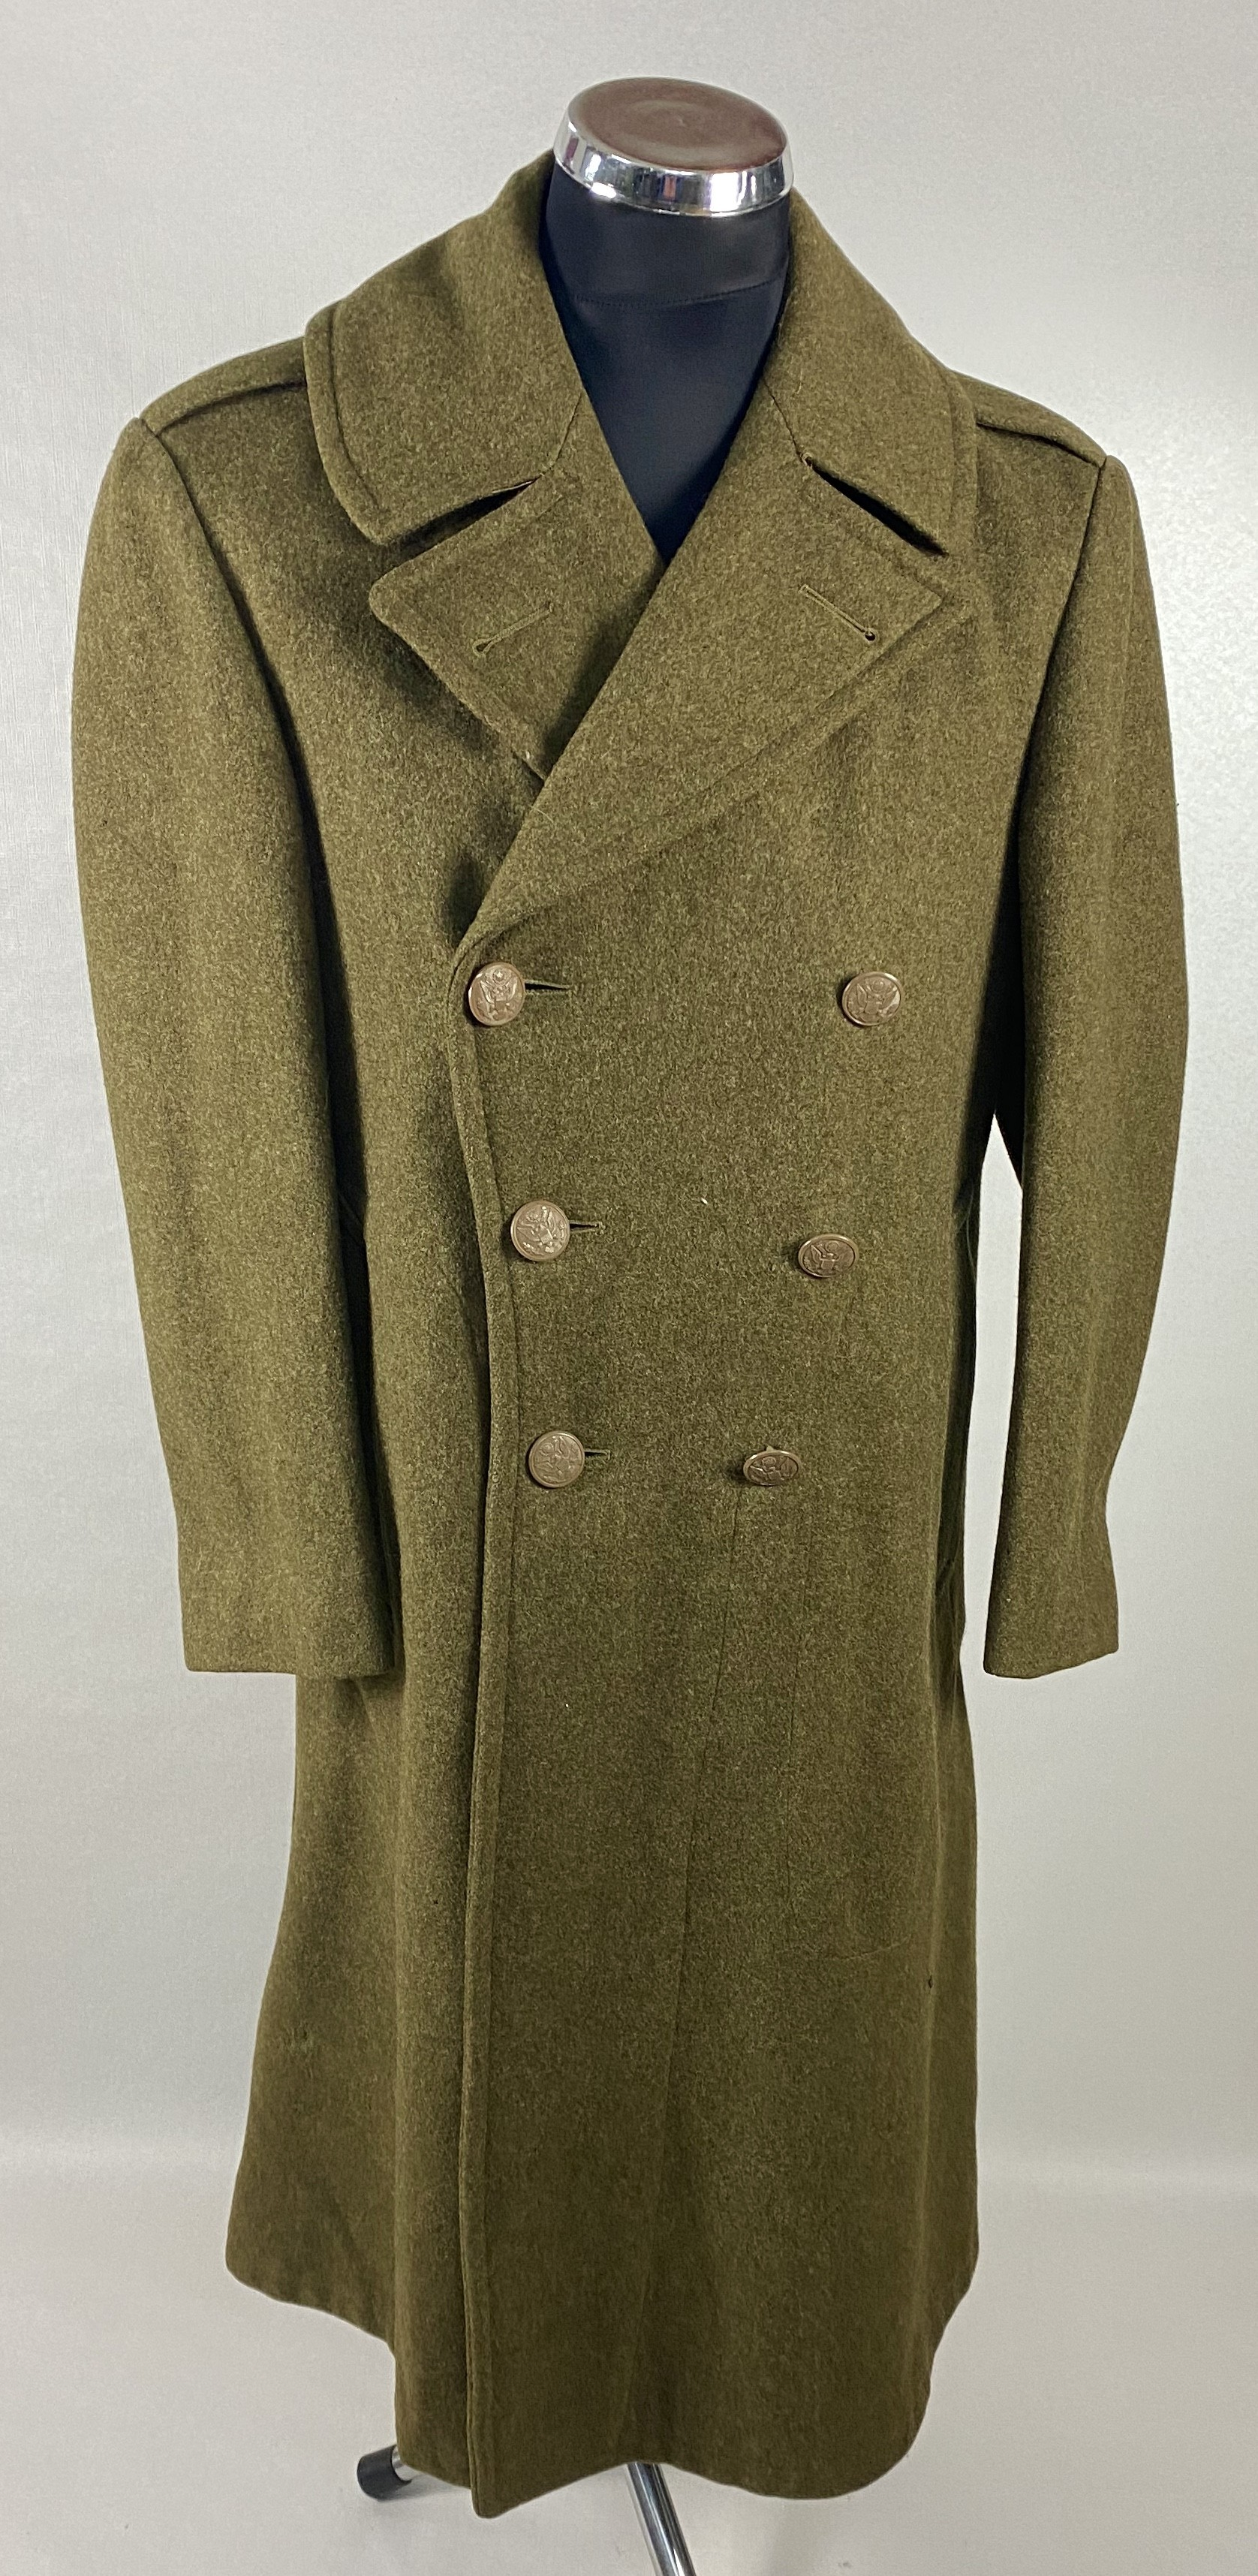 UN-OVERCOAT WOOL MELTON OD US ARMY ROLL COLLAR M39 BOTONES PASTA